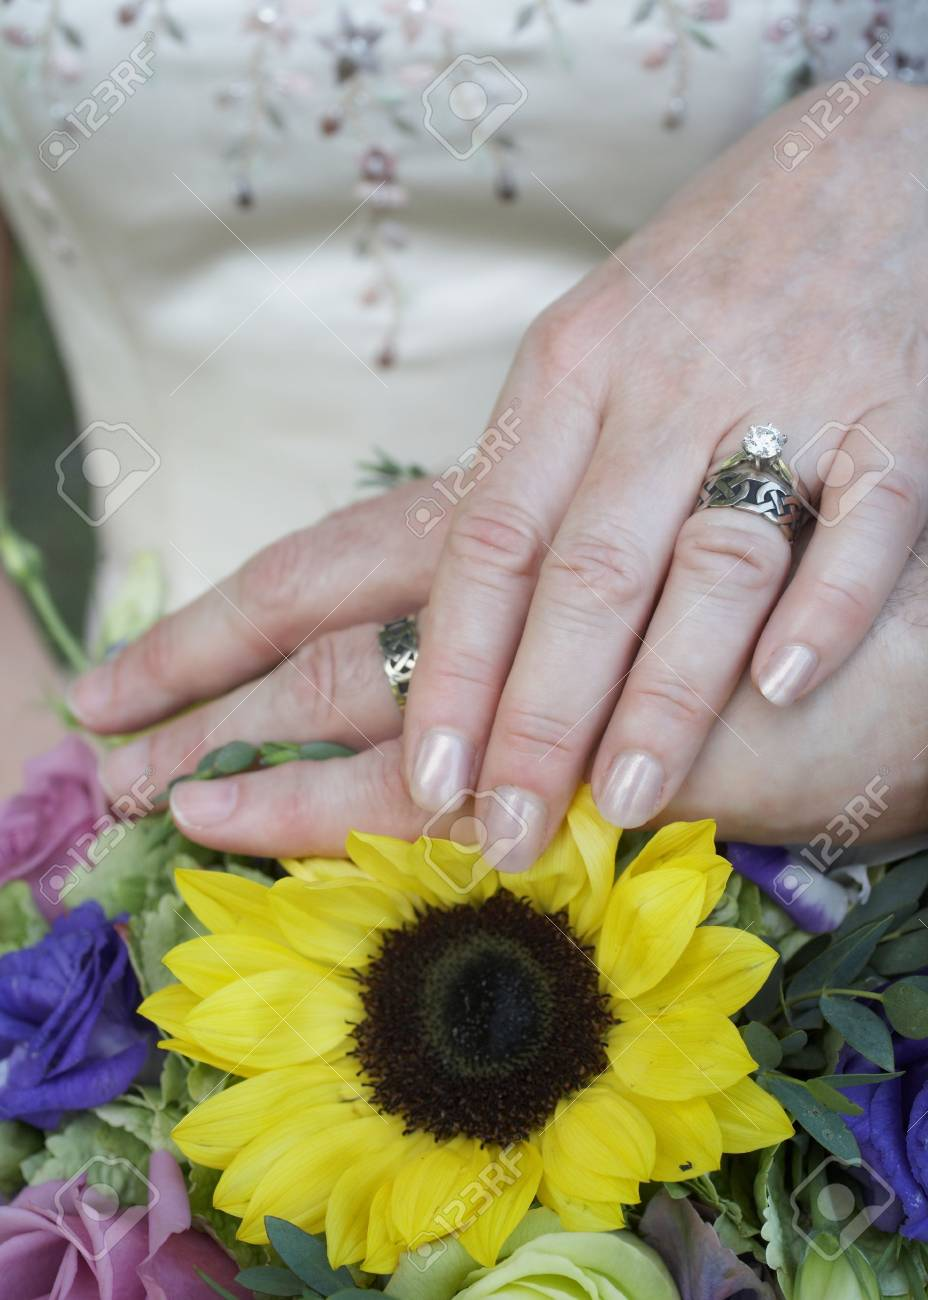 Wedding rings on hands of bride and groom, focus on hands Stock Photo - 3431043